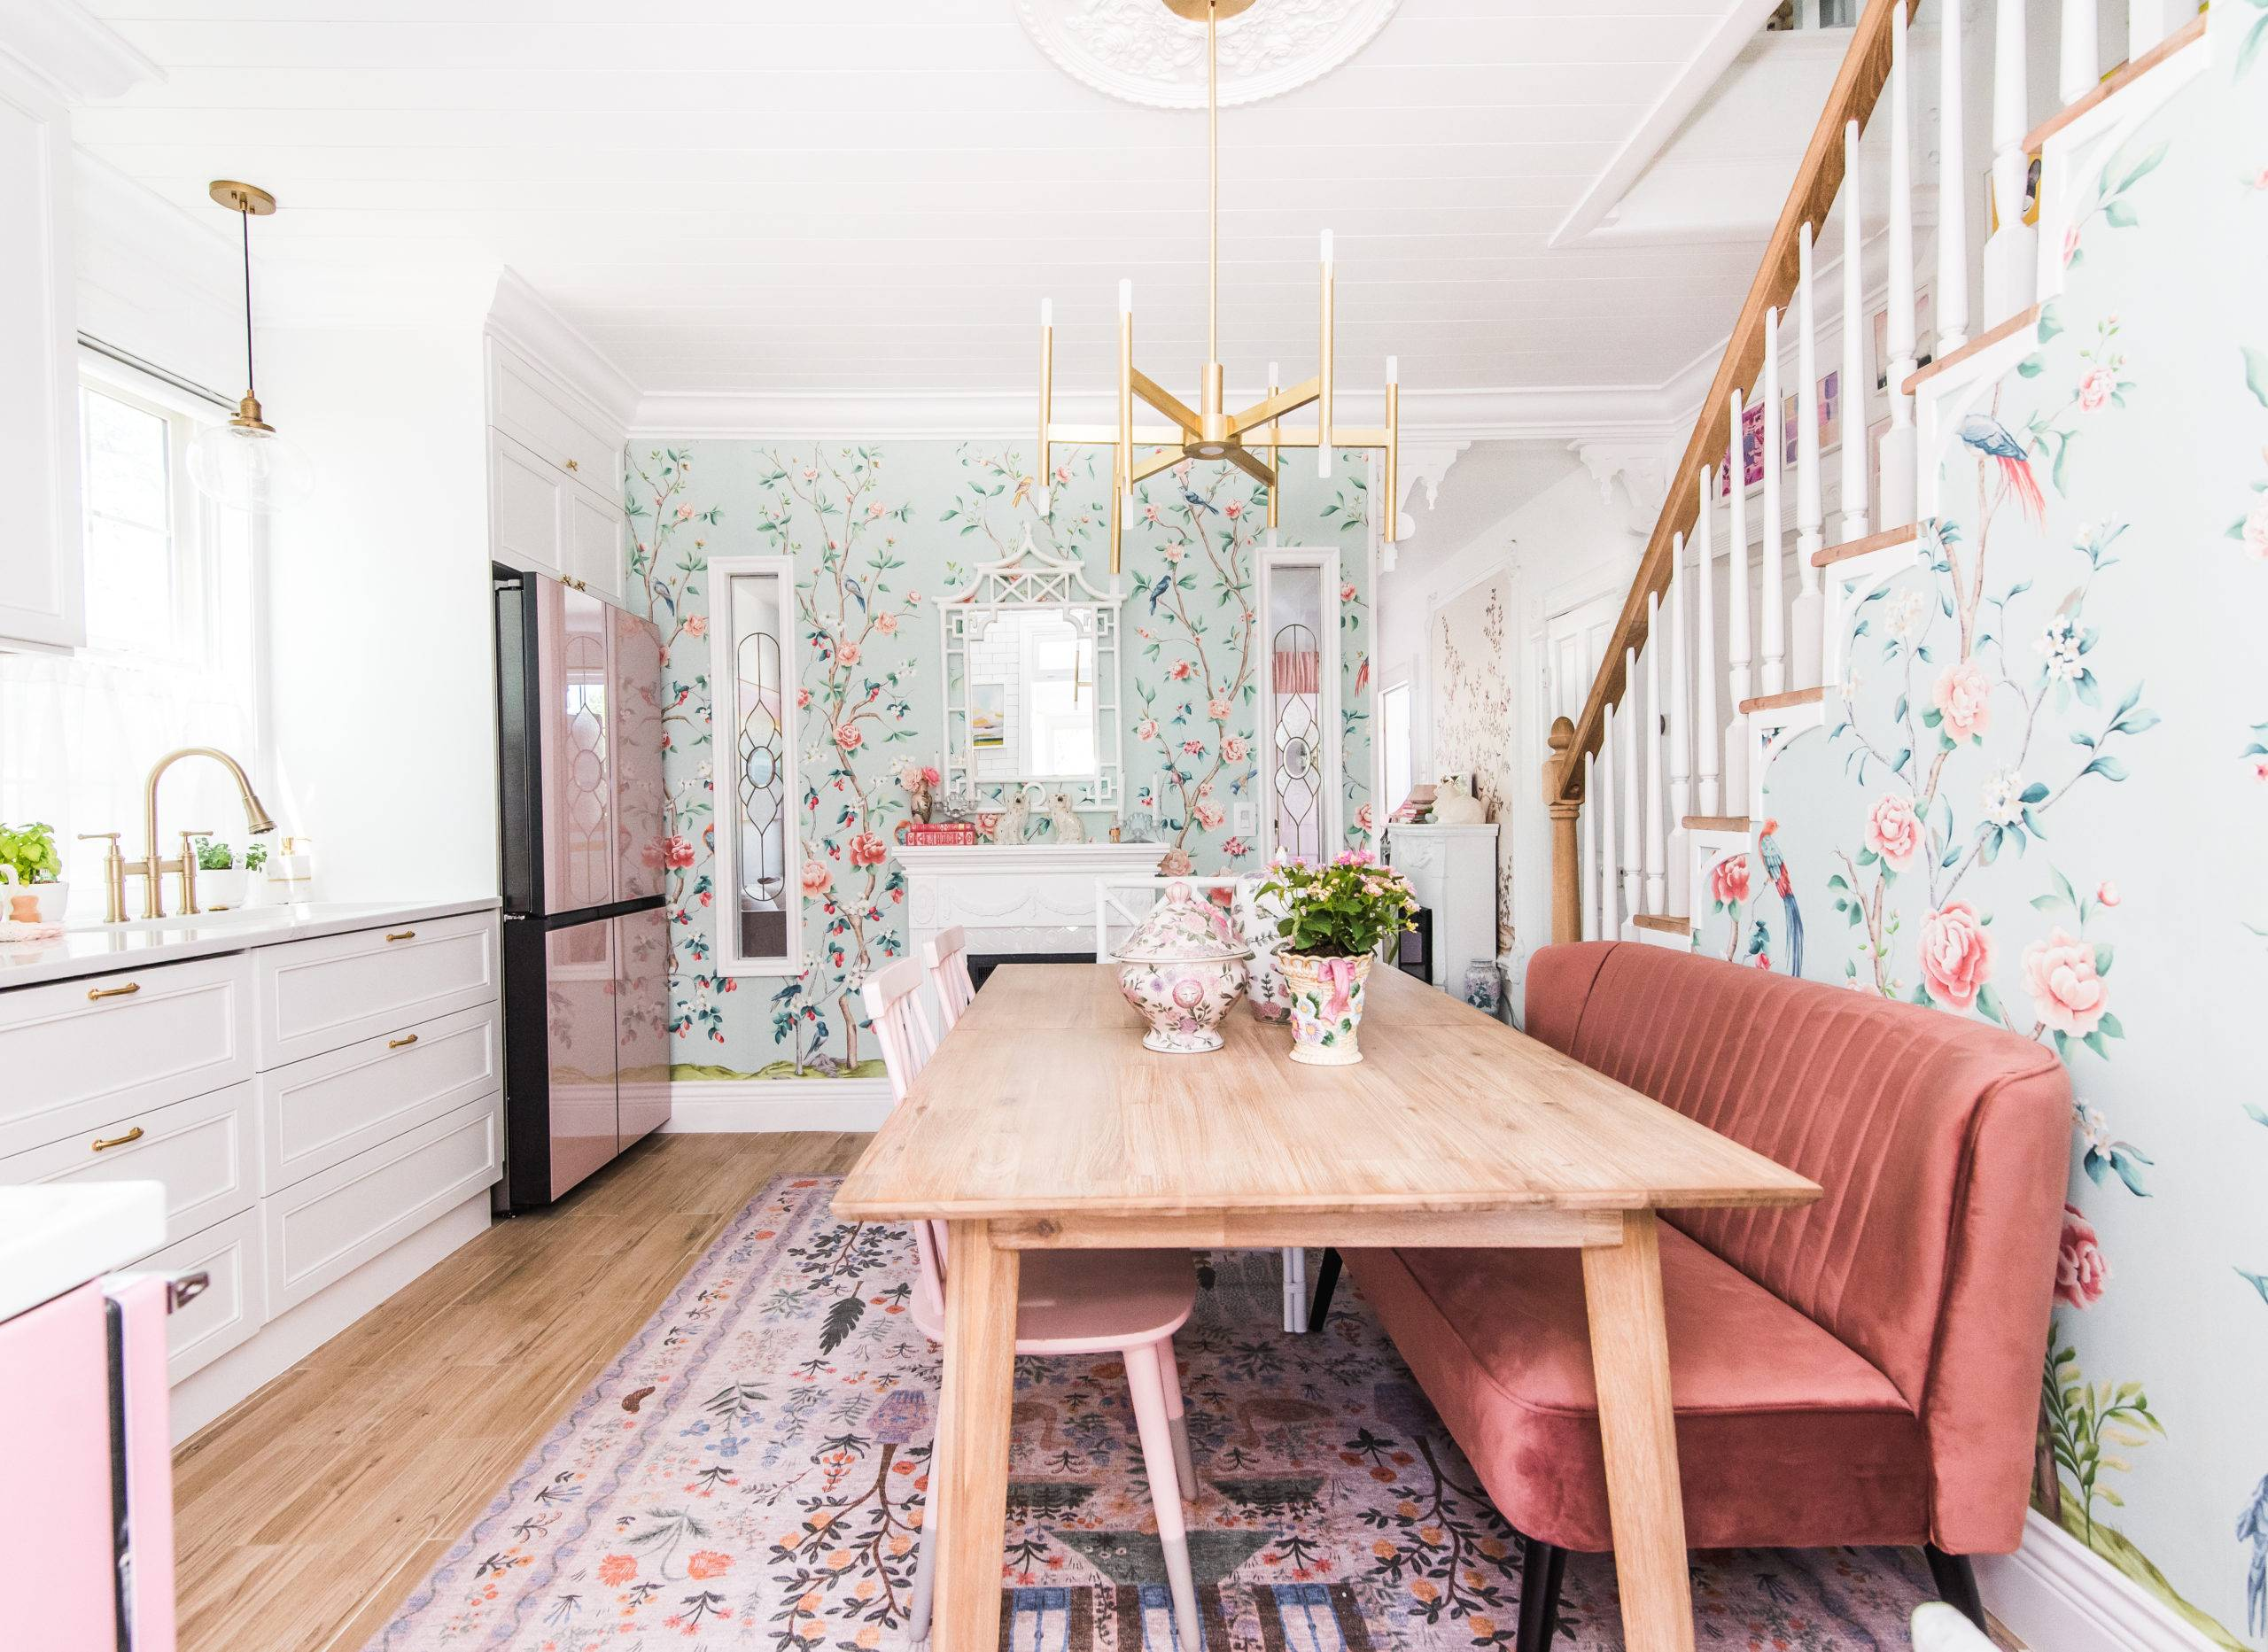 bright white kitchen and dining area with teal floral wallpaper and large wooden dining table